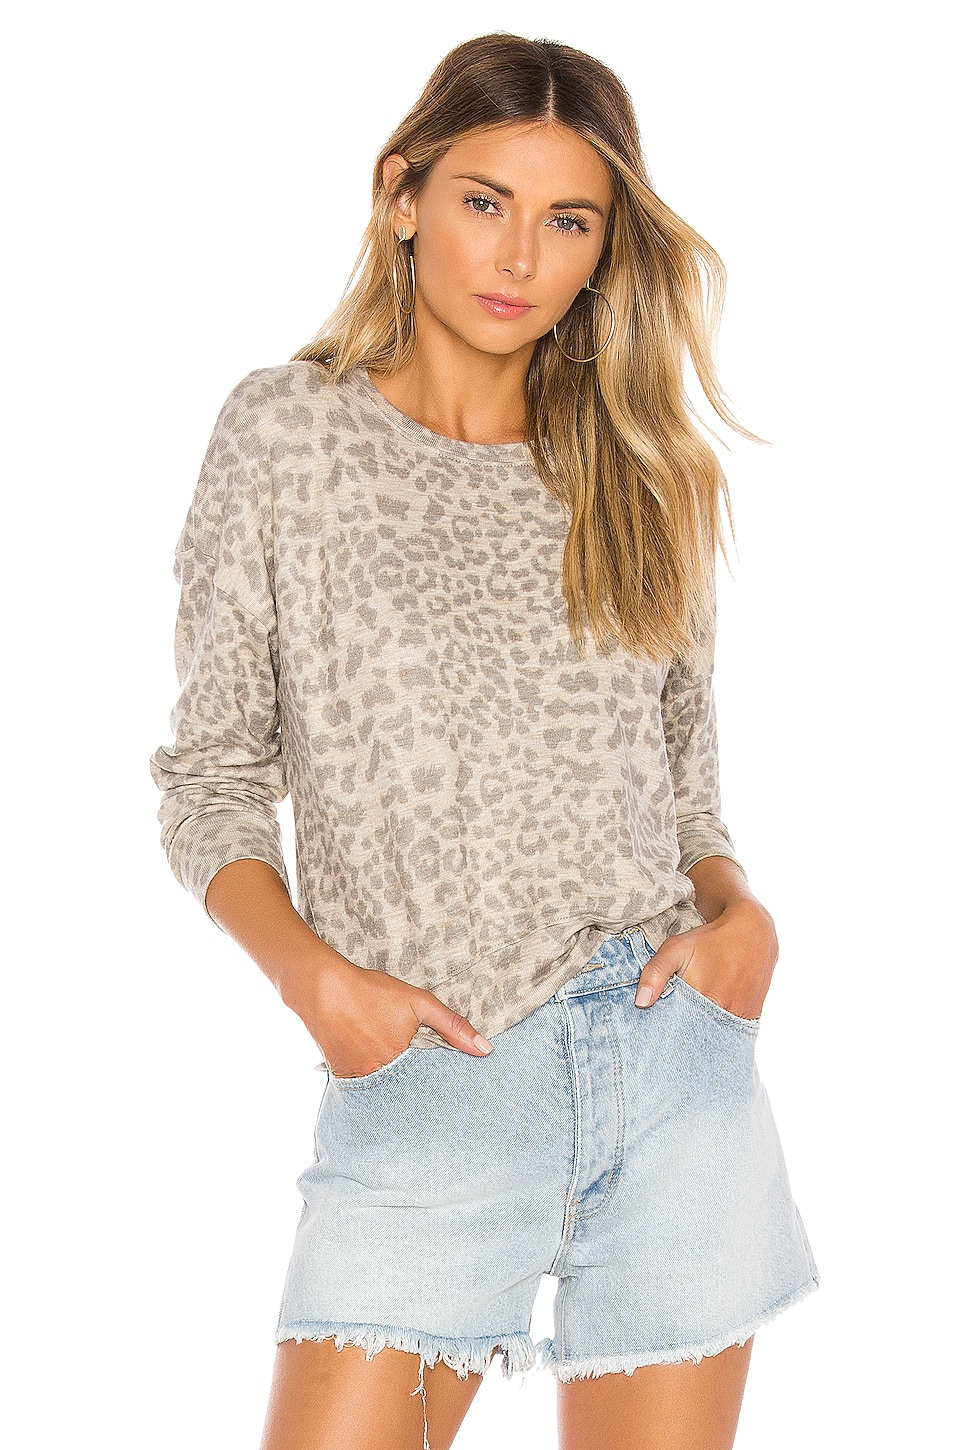 SUNDRY Drapey Sweater in Sand